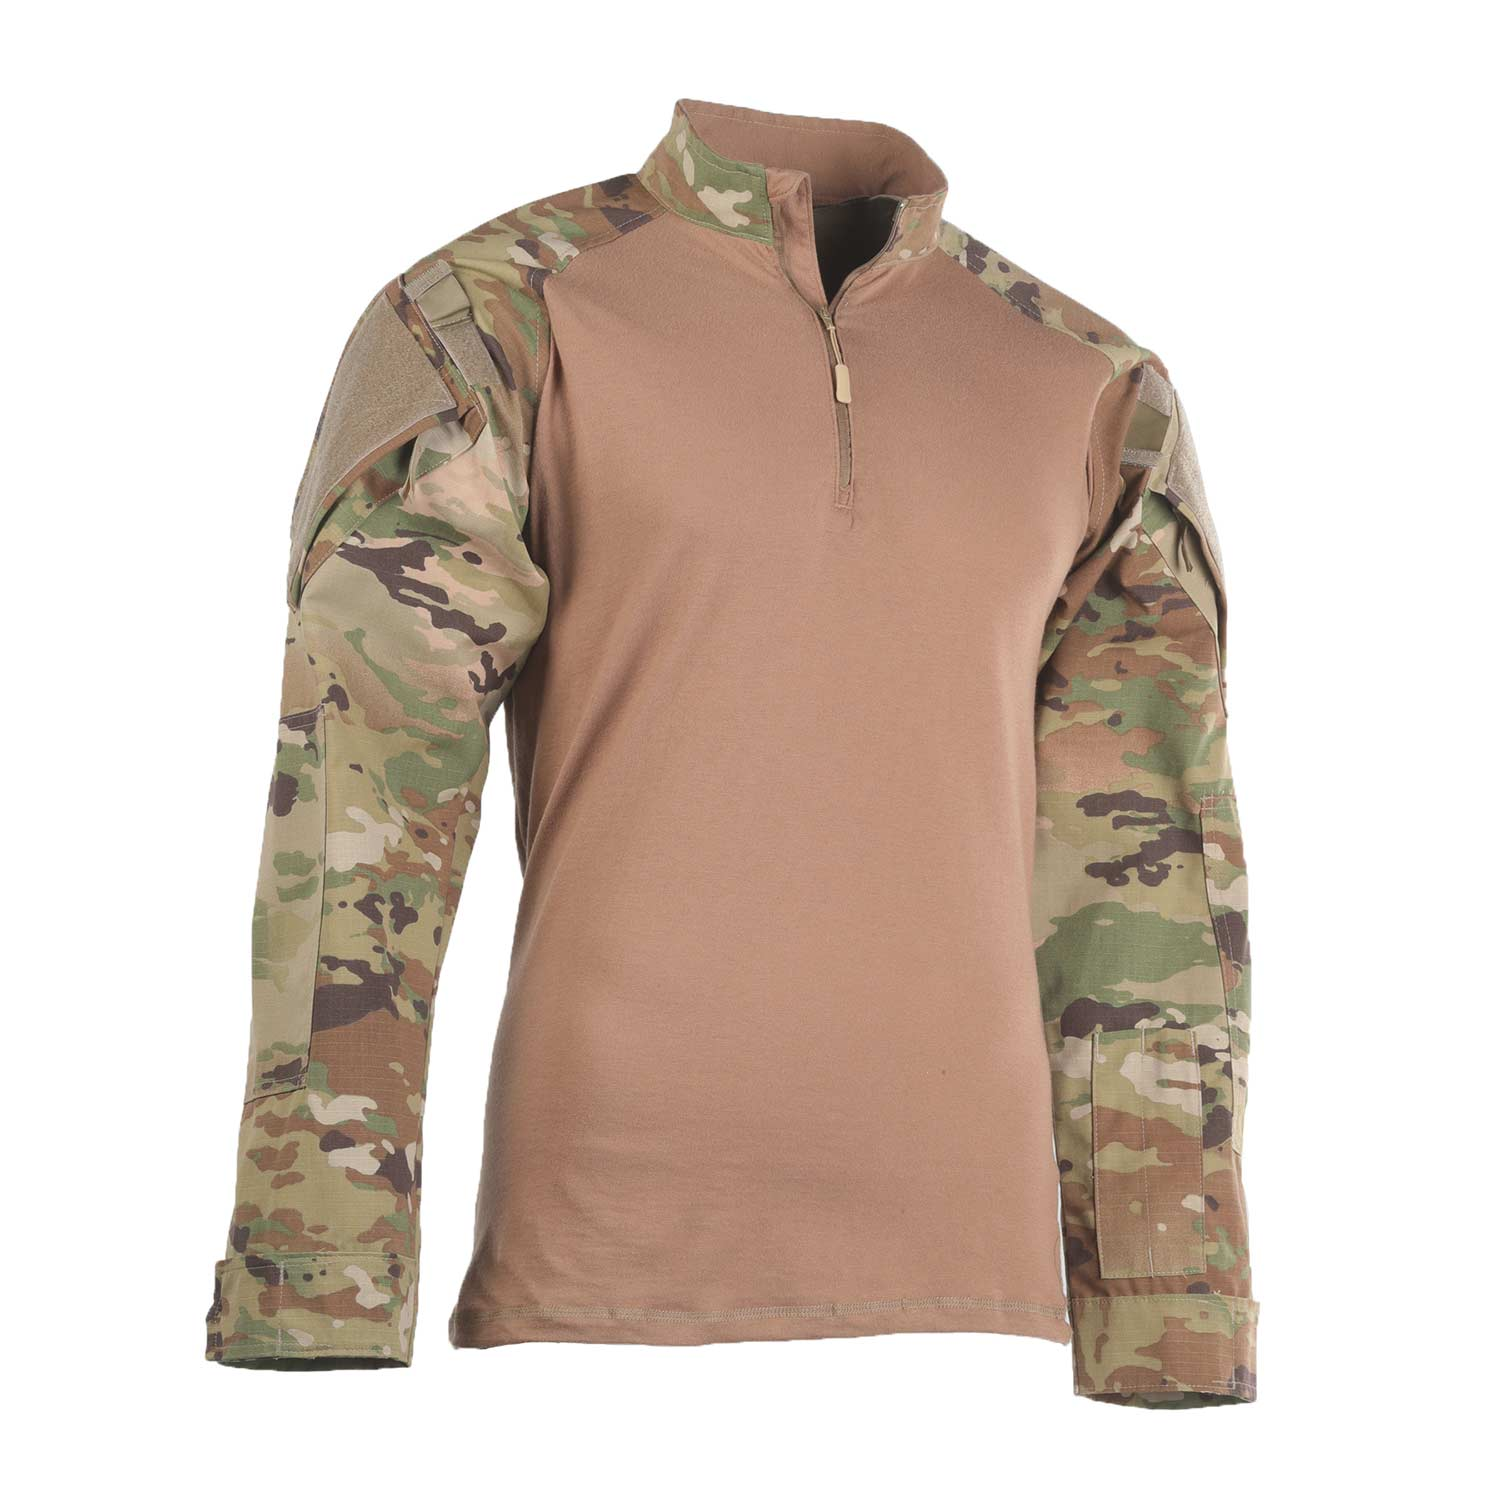 TRU-SPEC OCP Scorpion W2 ¼ Zip Combat Shirt